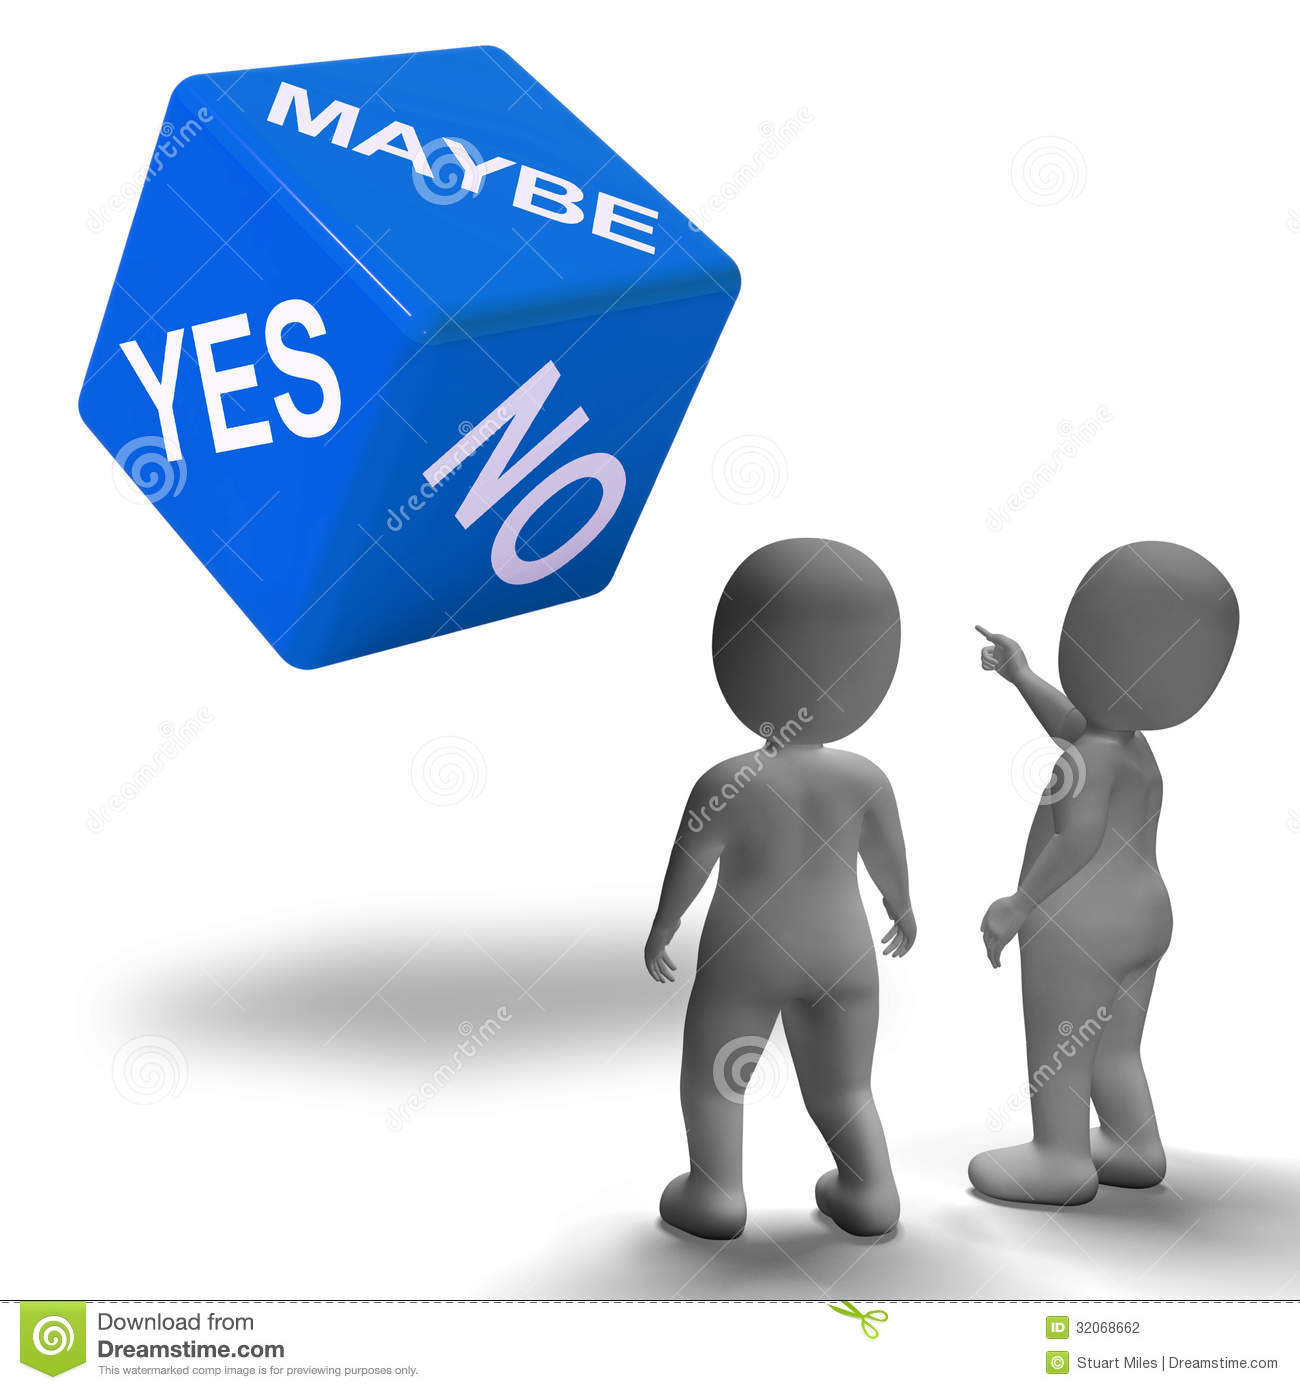 rc helix with Yes No Maybe Dice on 725 Columnas De Madera Para Modelismo Naval furthermore Ip man bw t shirt 235188966639296621 besides Viewtopic also Ap070802 further Prion Disease 55576506.